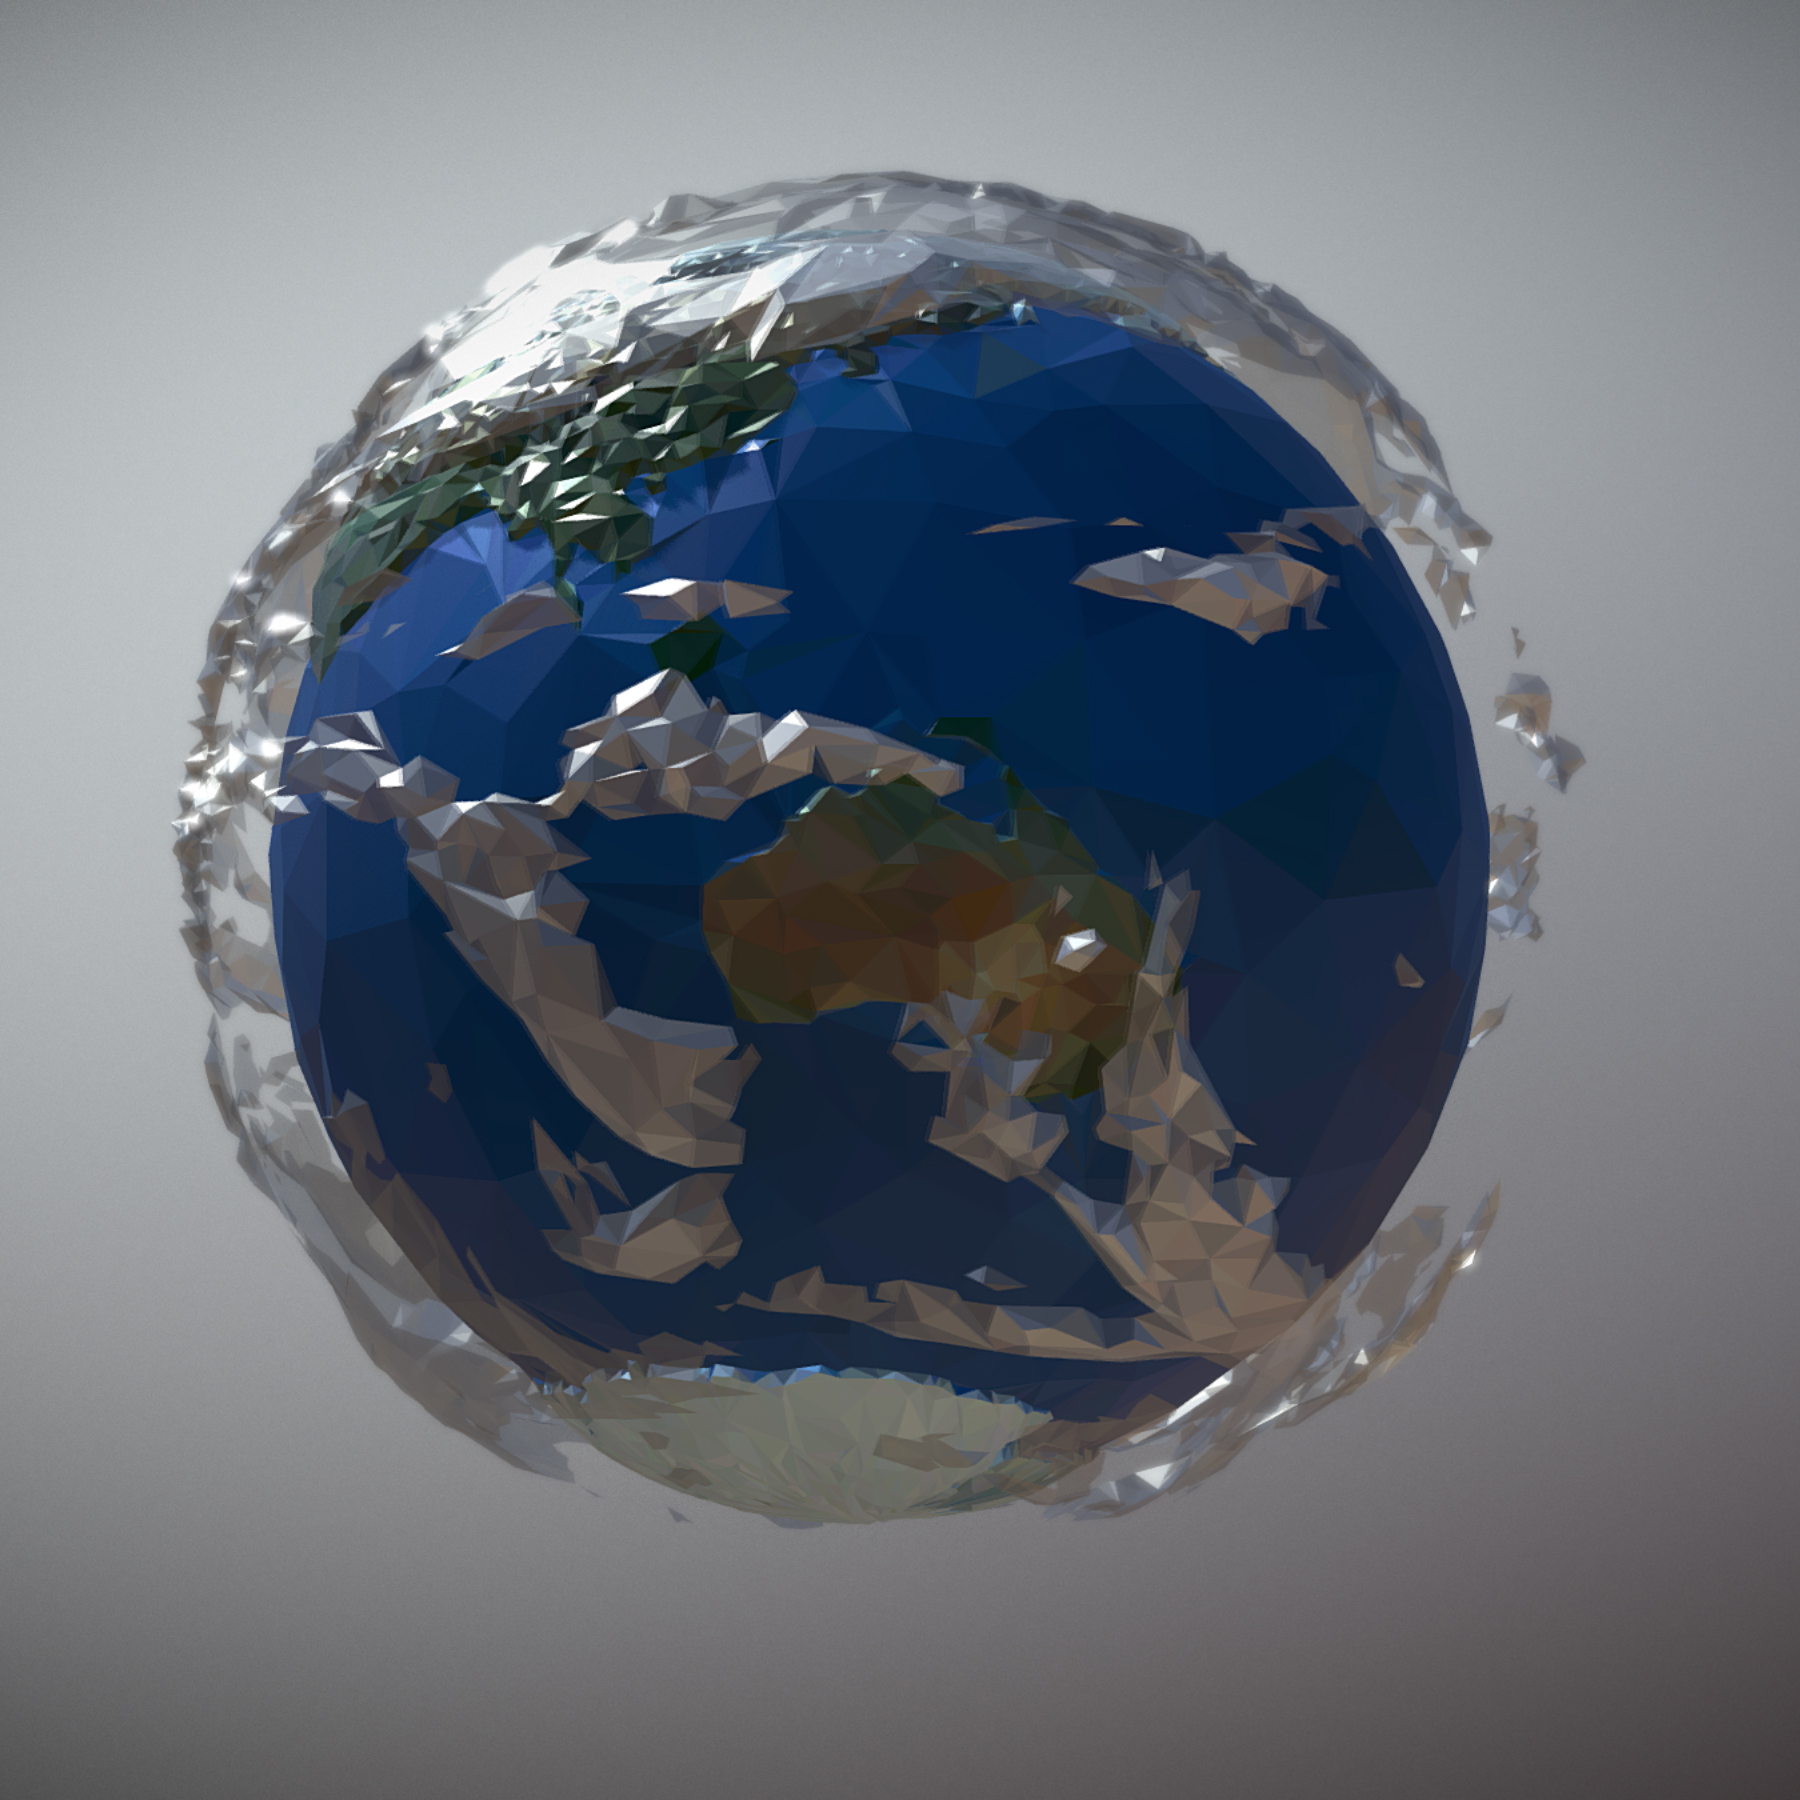 animated planet earth 3d model 3ds max fbx ma mb tga targa icb vda vst pix obj 271044